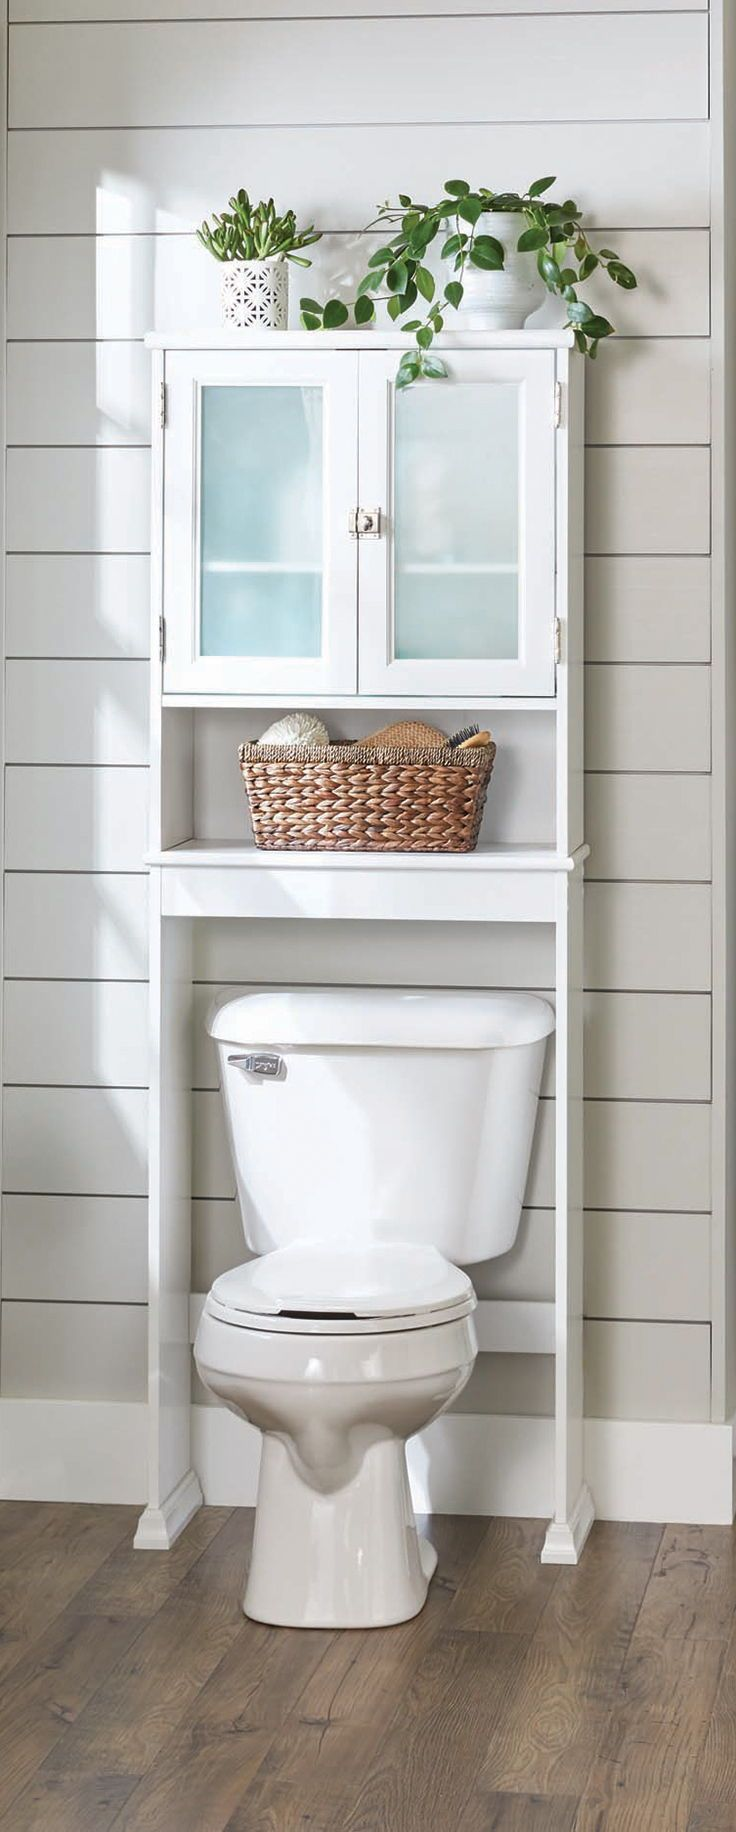 Home With Images Bathroom Space Saver Small Bathroom Interior